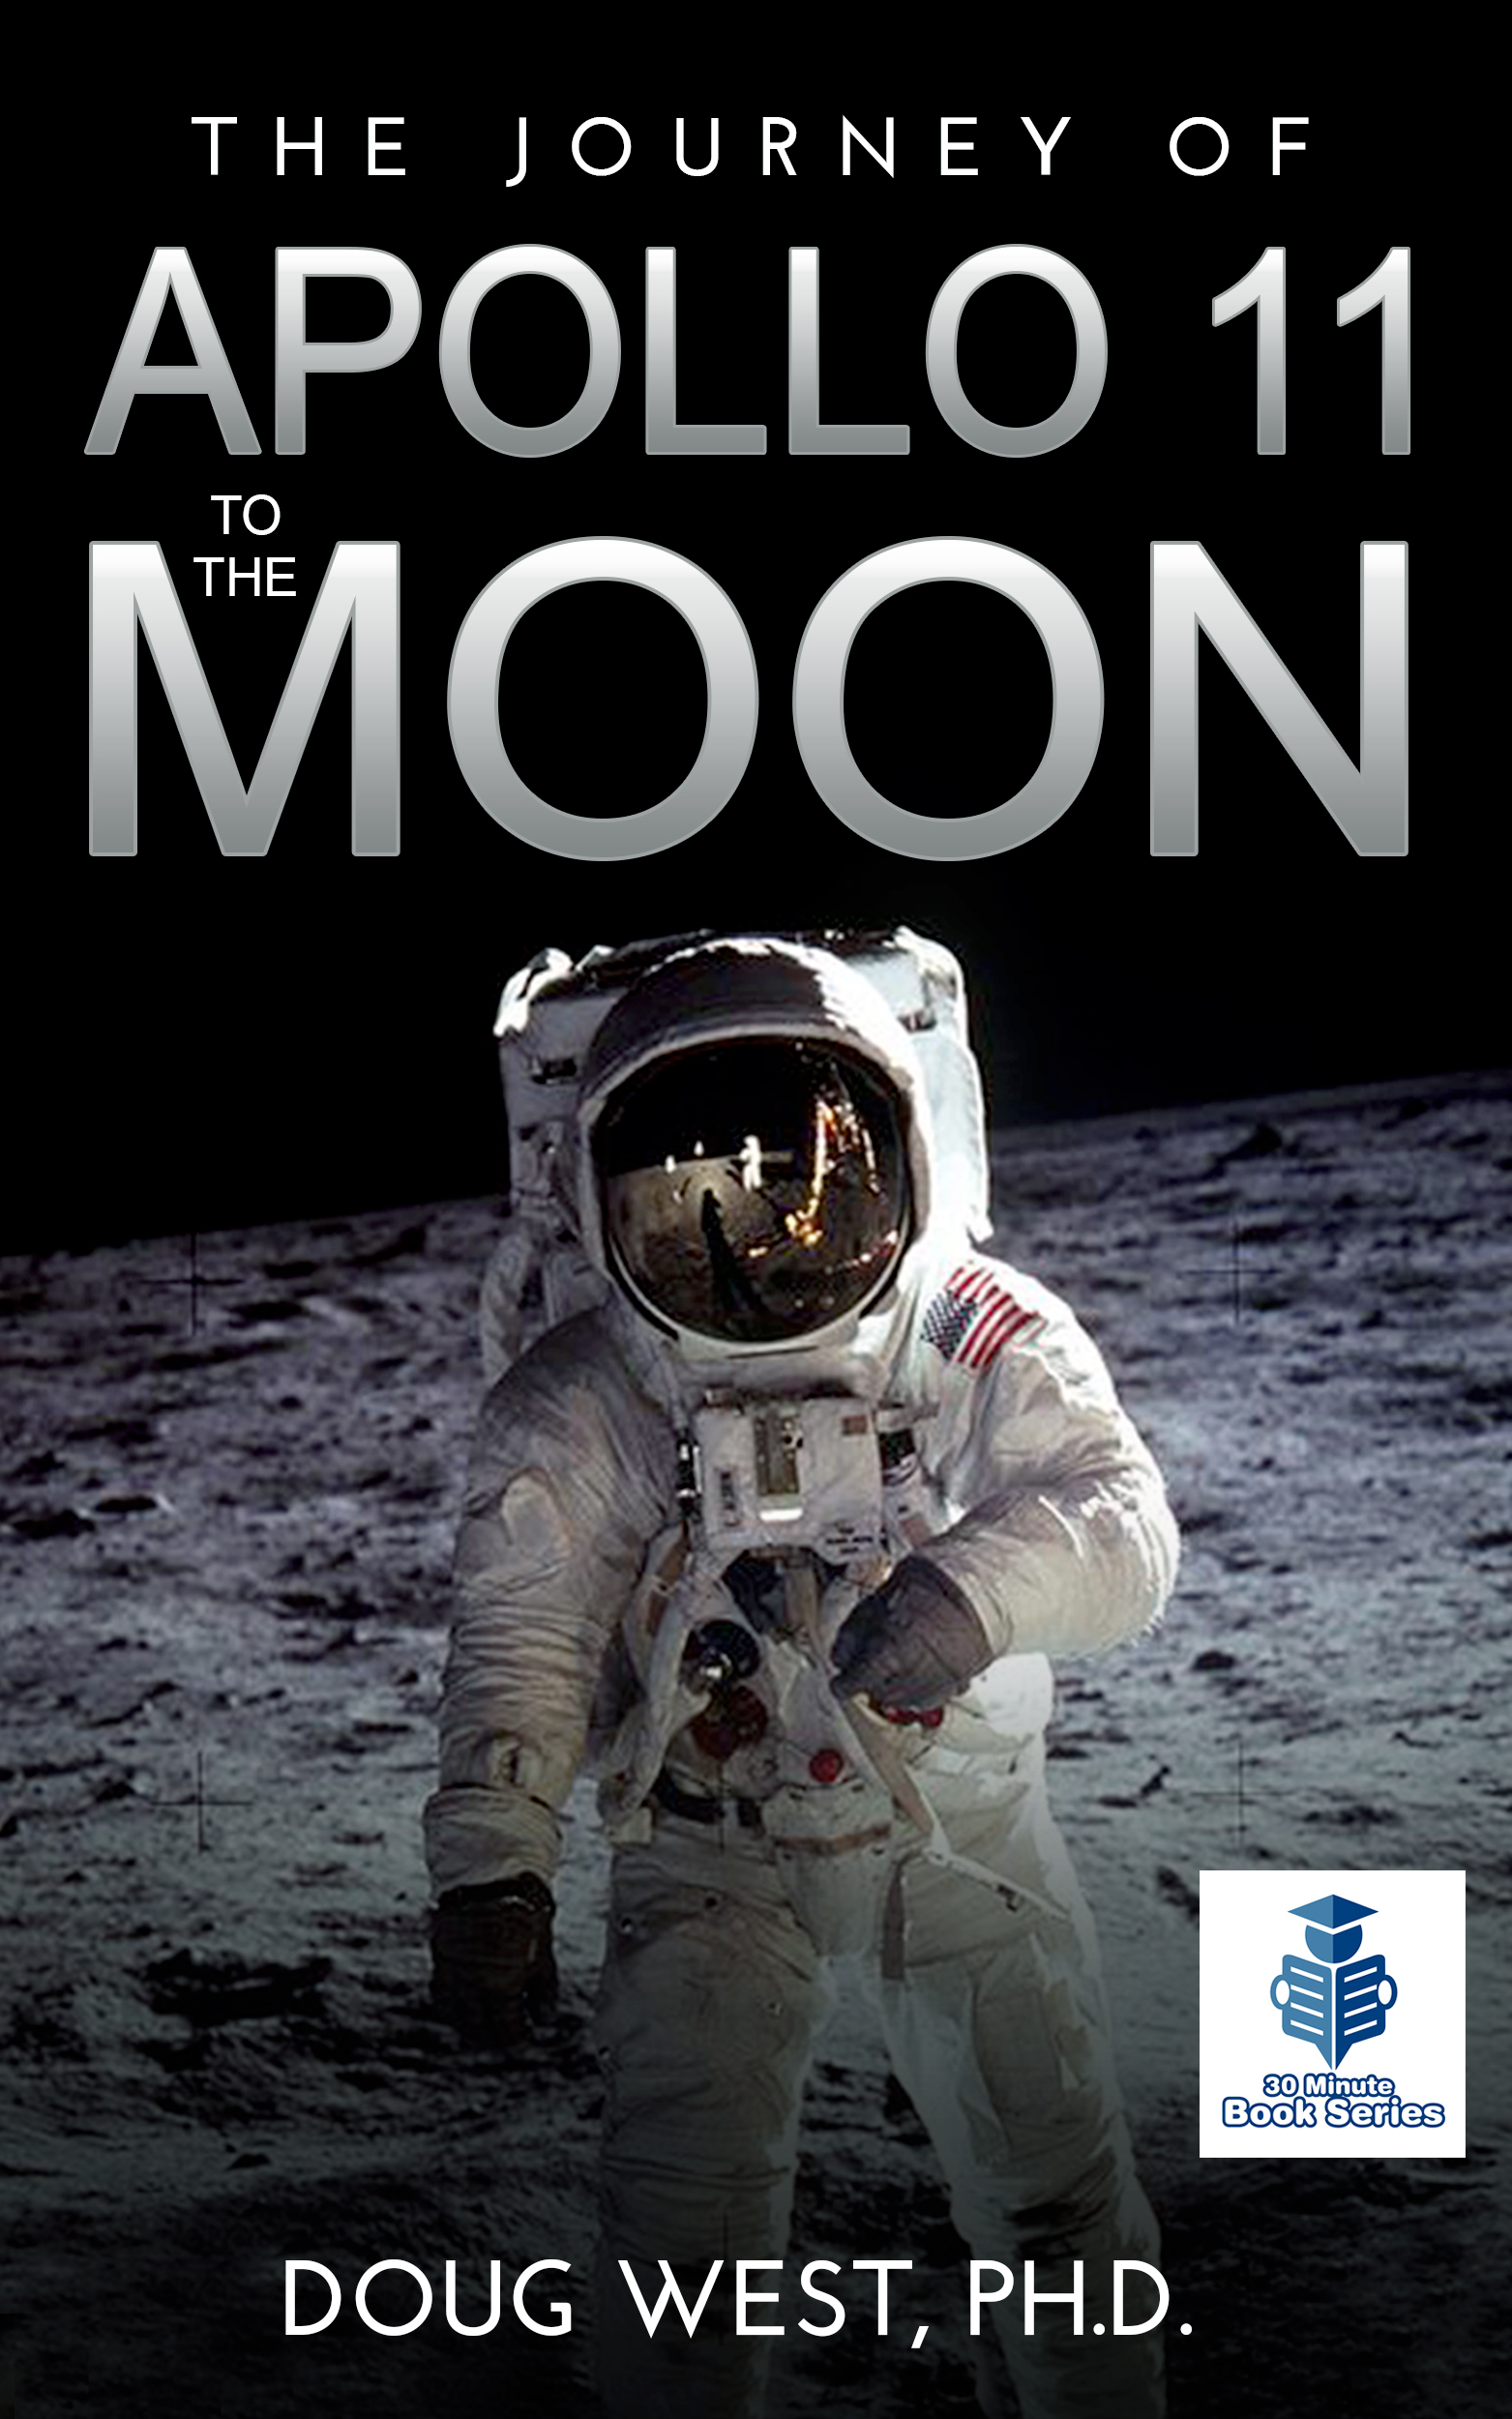 The Journey of Apollo 11 to the Moon, an Ebook by Doug West